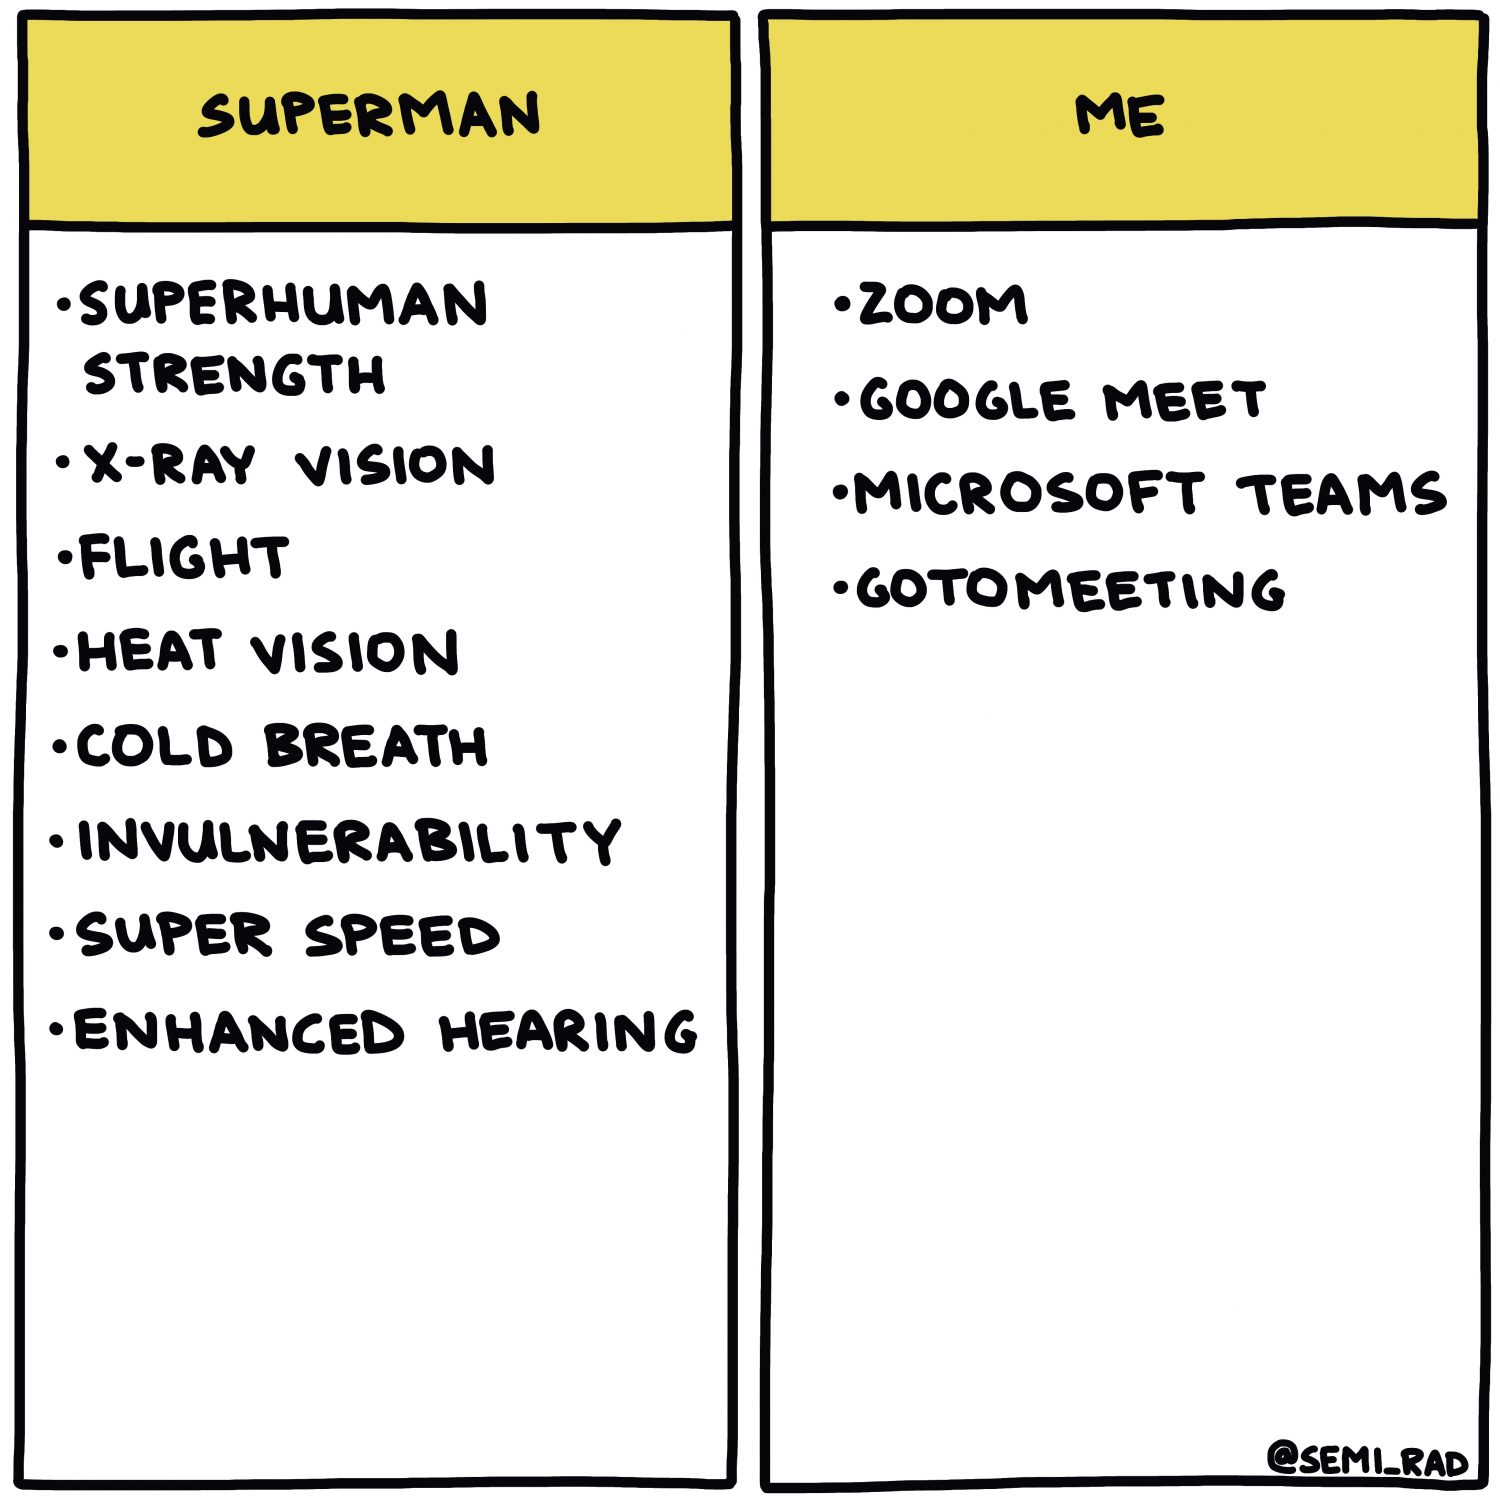 Superman vs. Me